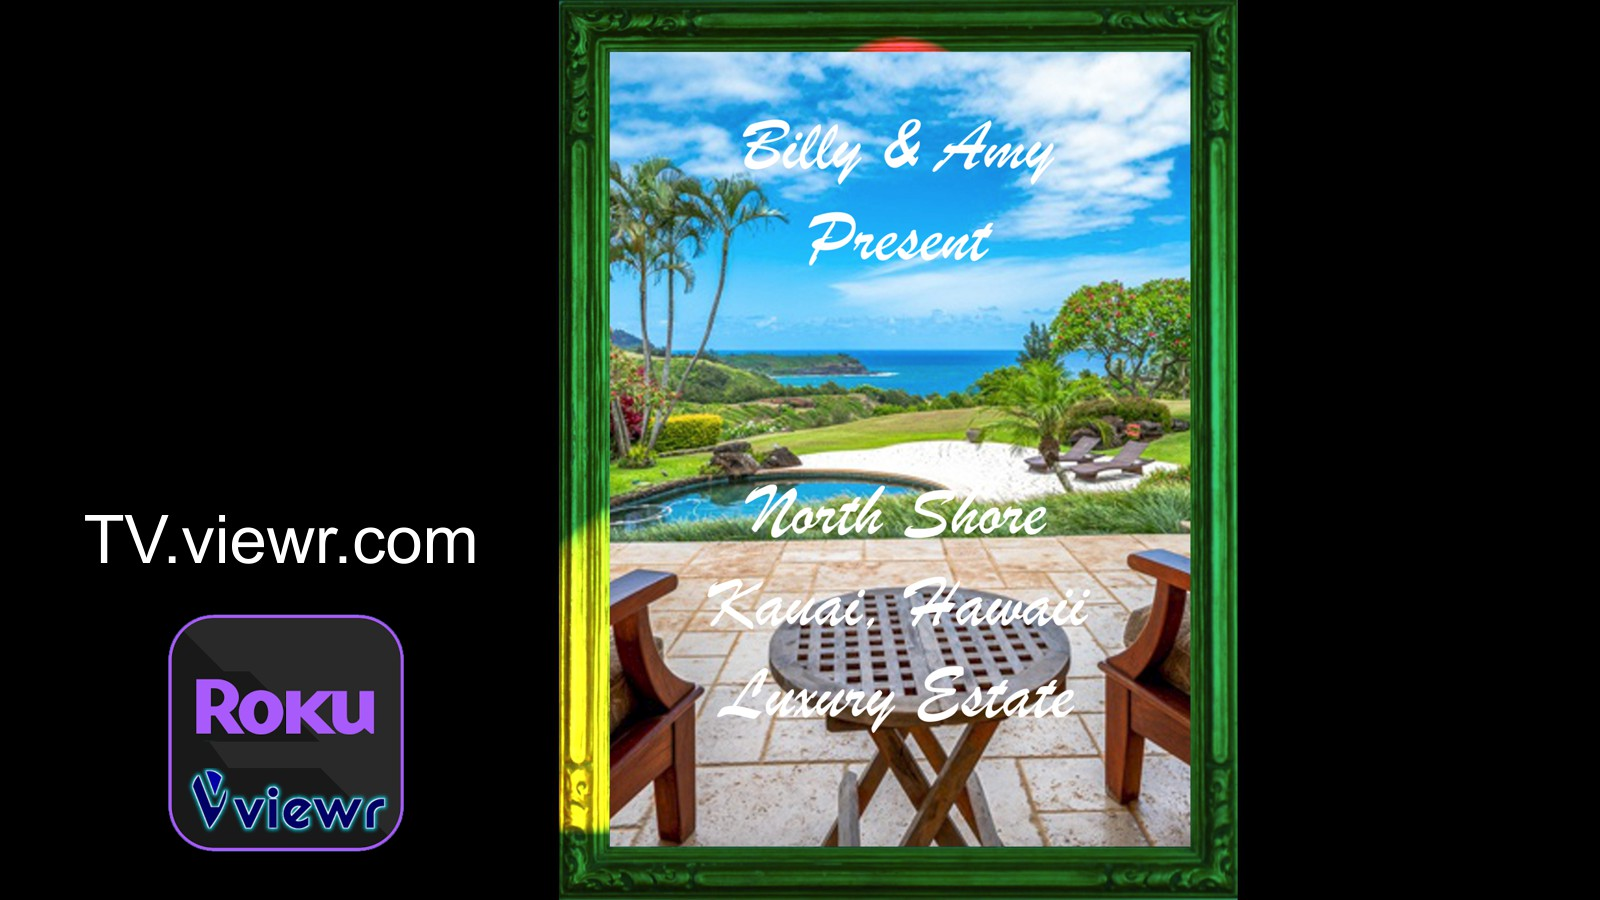 Billy and Amy Present North Shore Kauai Hawaii Luxury Estate viewr TV Slide